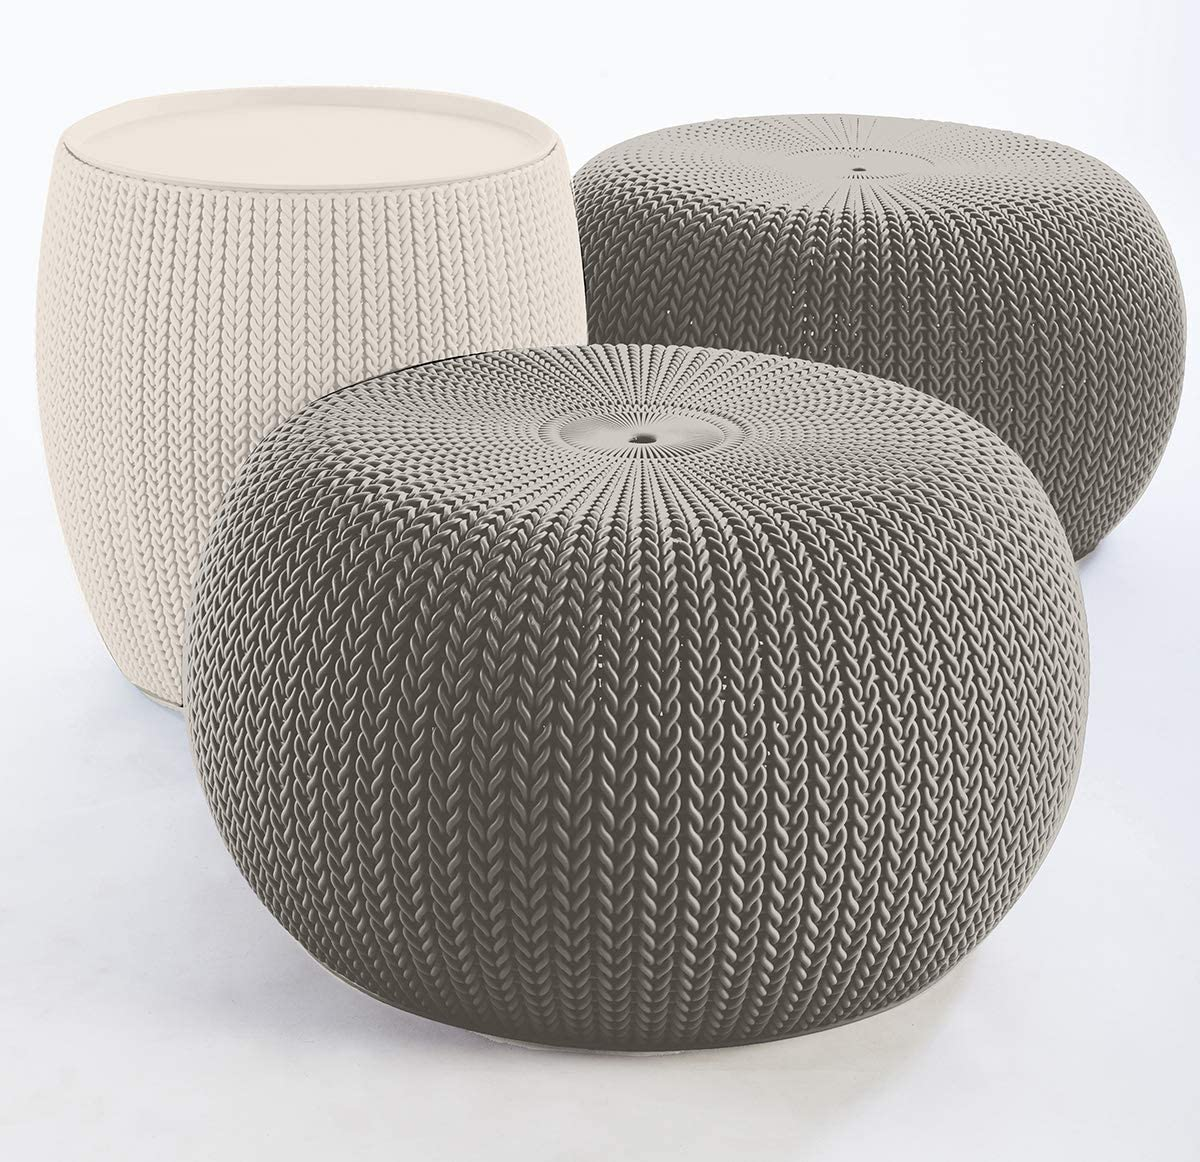 KETER Urban Knit Pouf Ottoman Set of 2 with Storage Table for Patio and Room Décor-Perfect for Balcony, Deck, and Outdoor Seating, Cream & Taupe : Garden & Outdoor